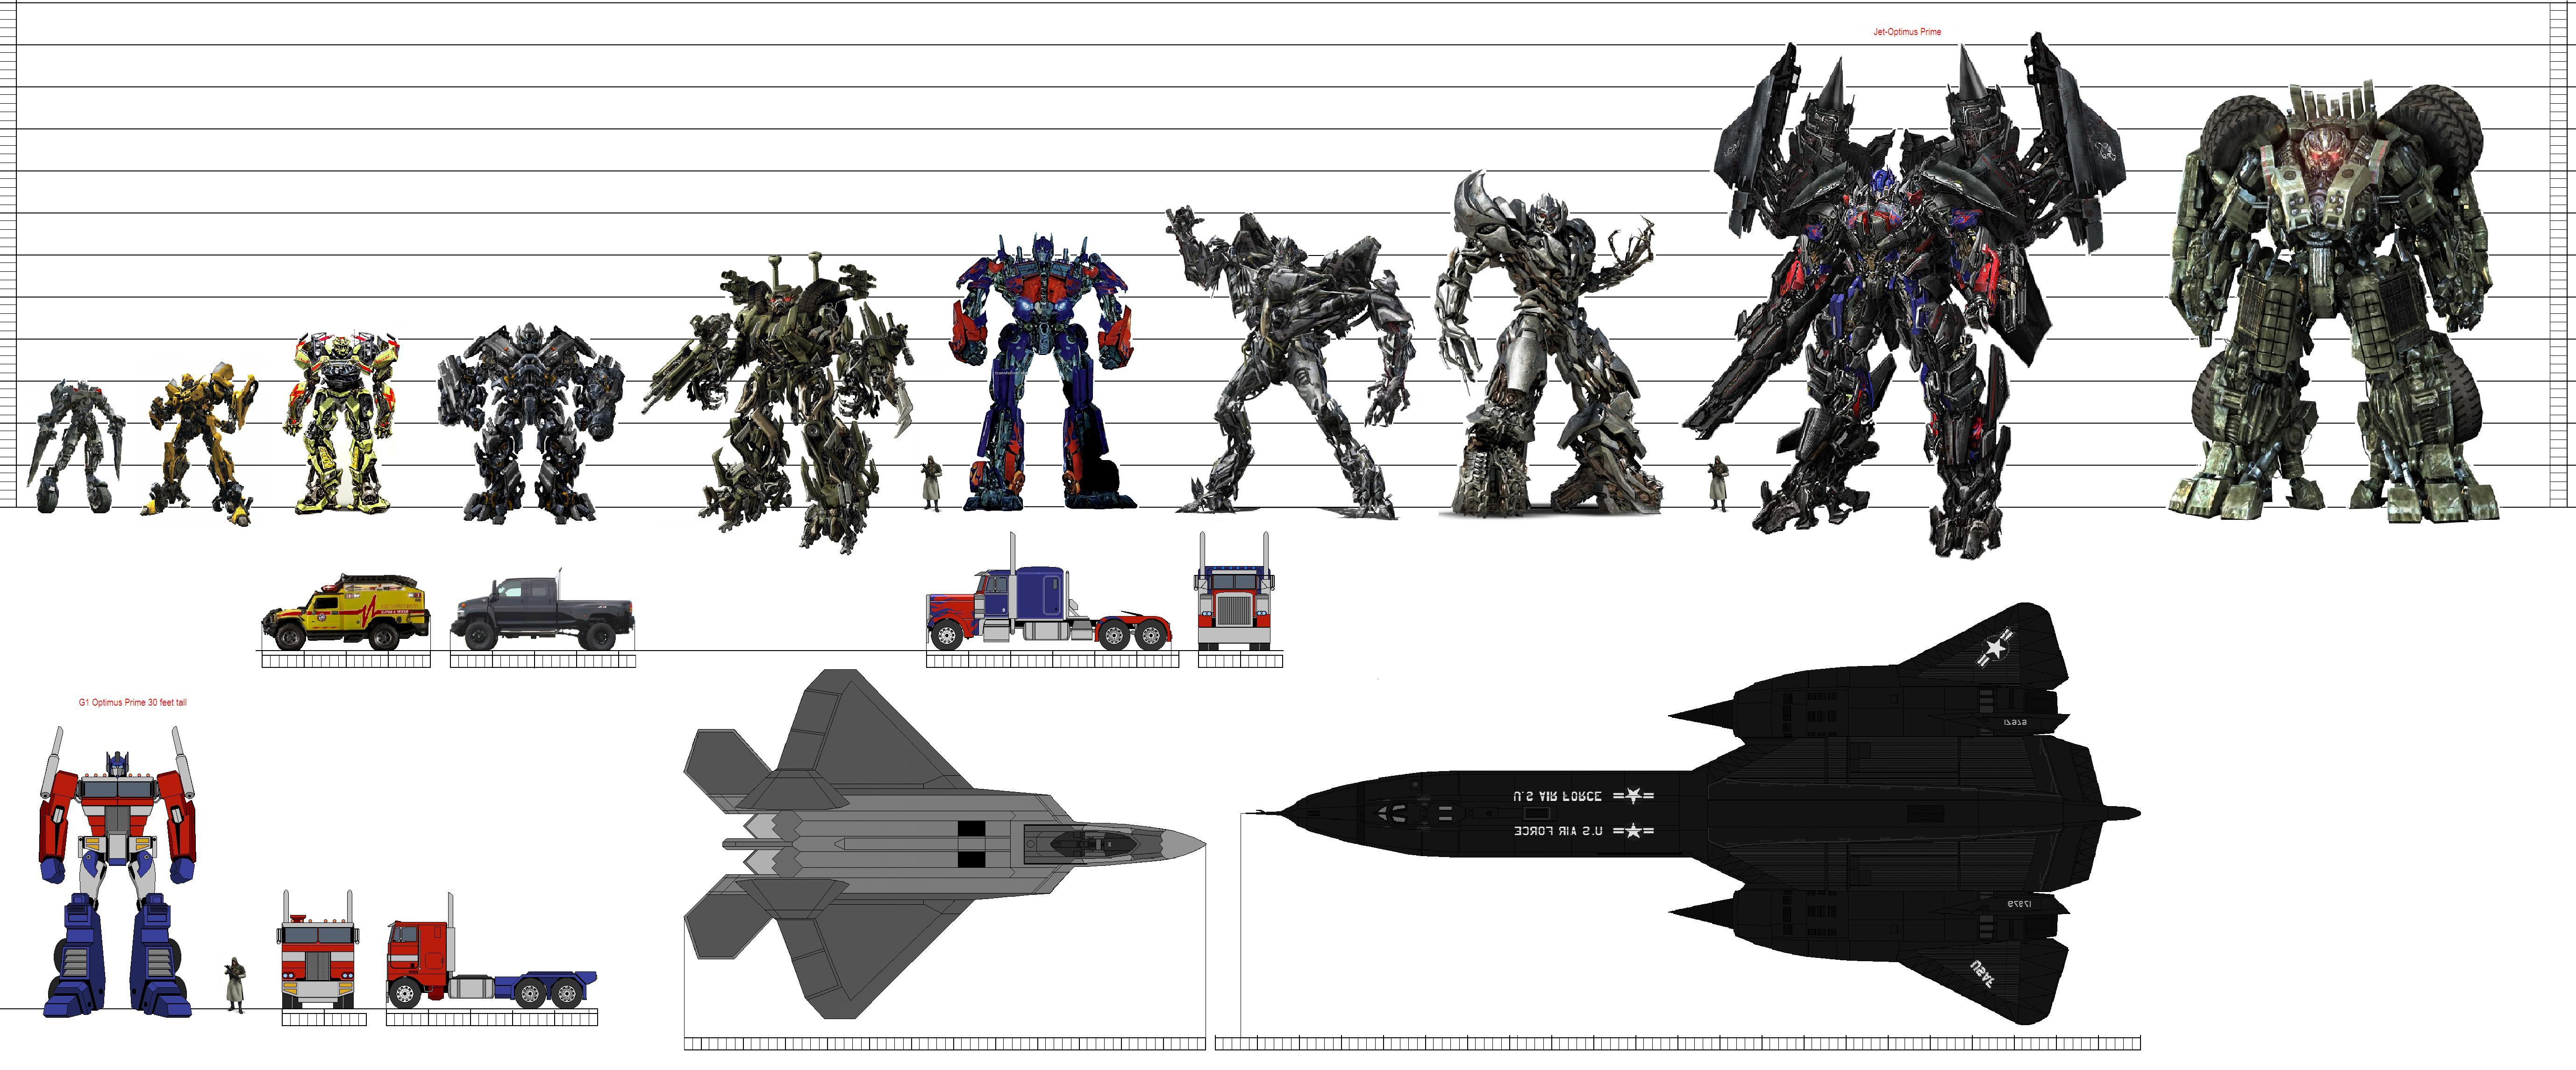 Movie%20Transformers%20Size%20Comparison.JPG